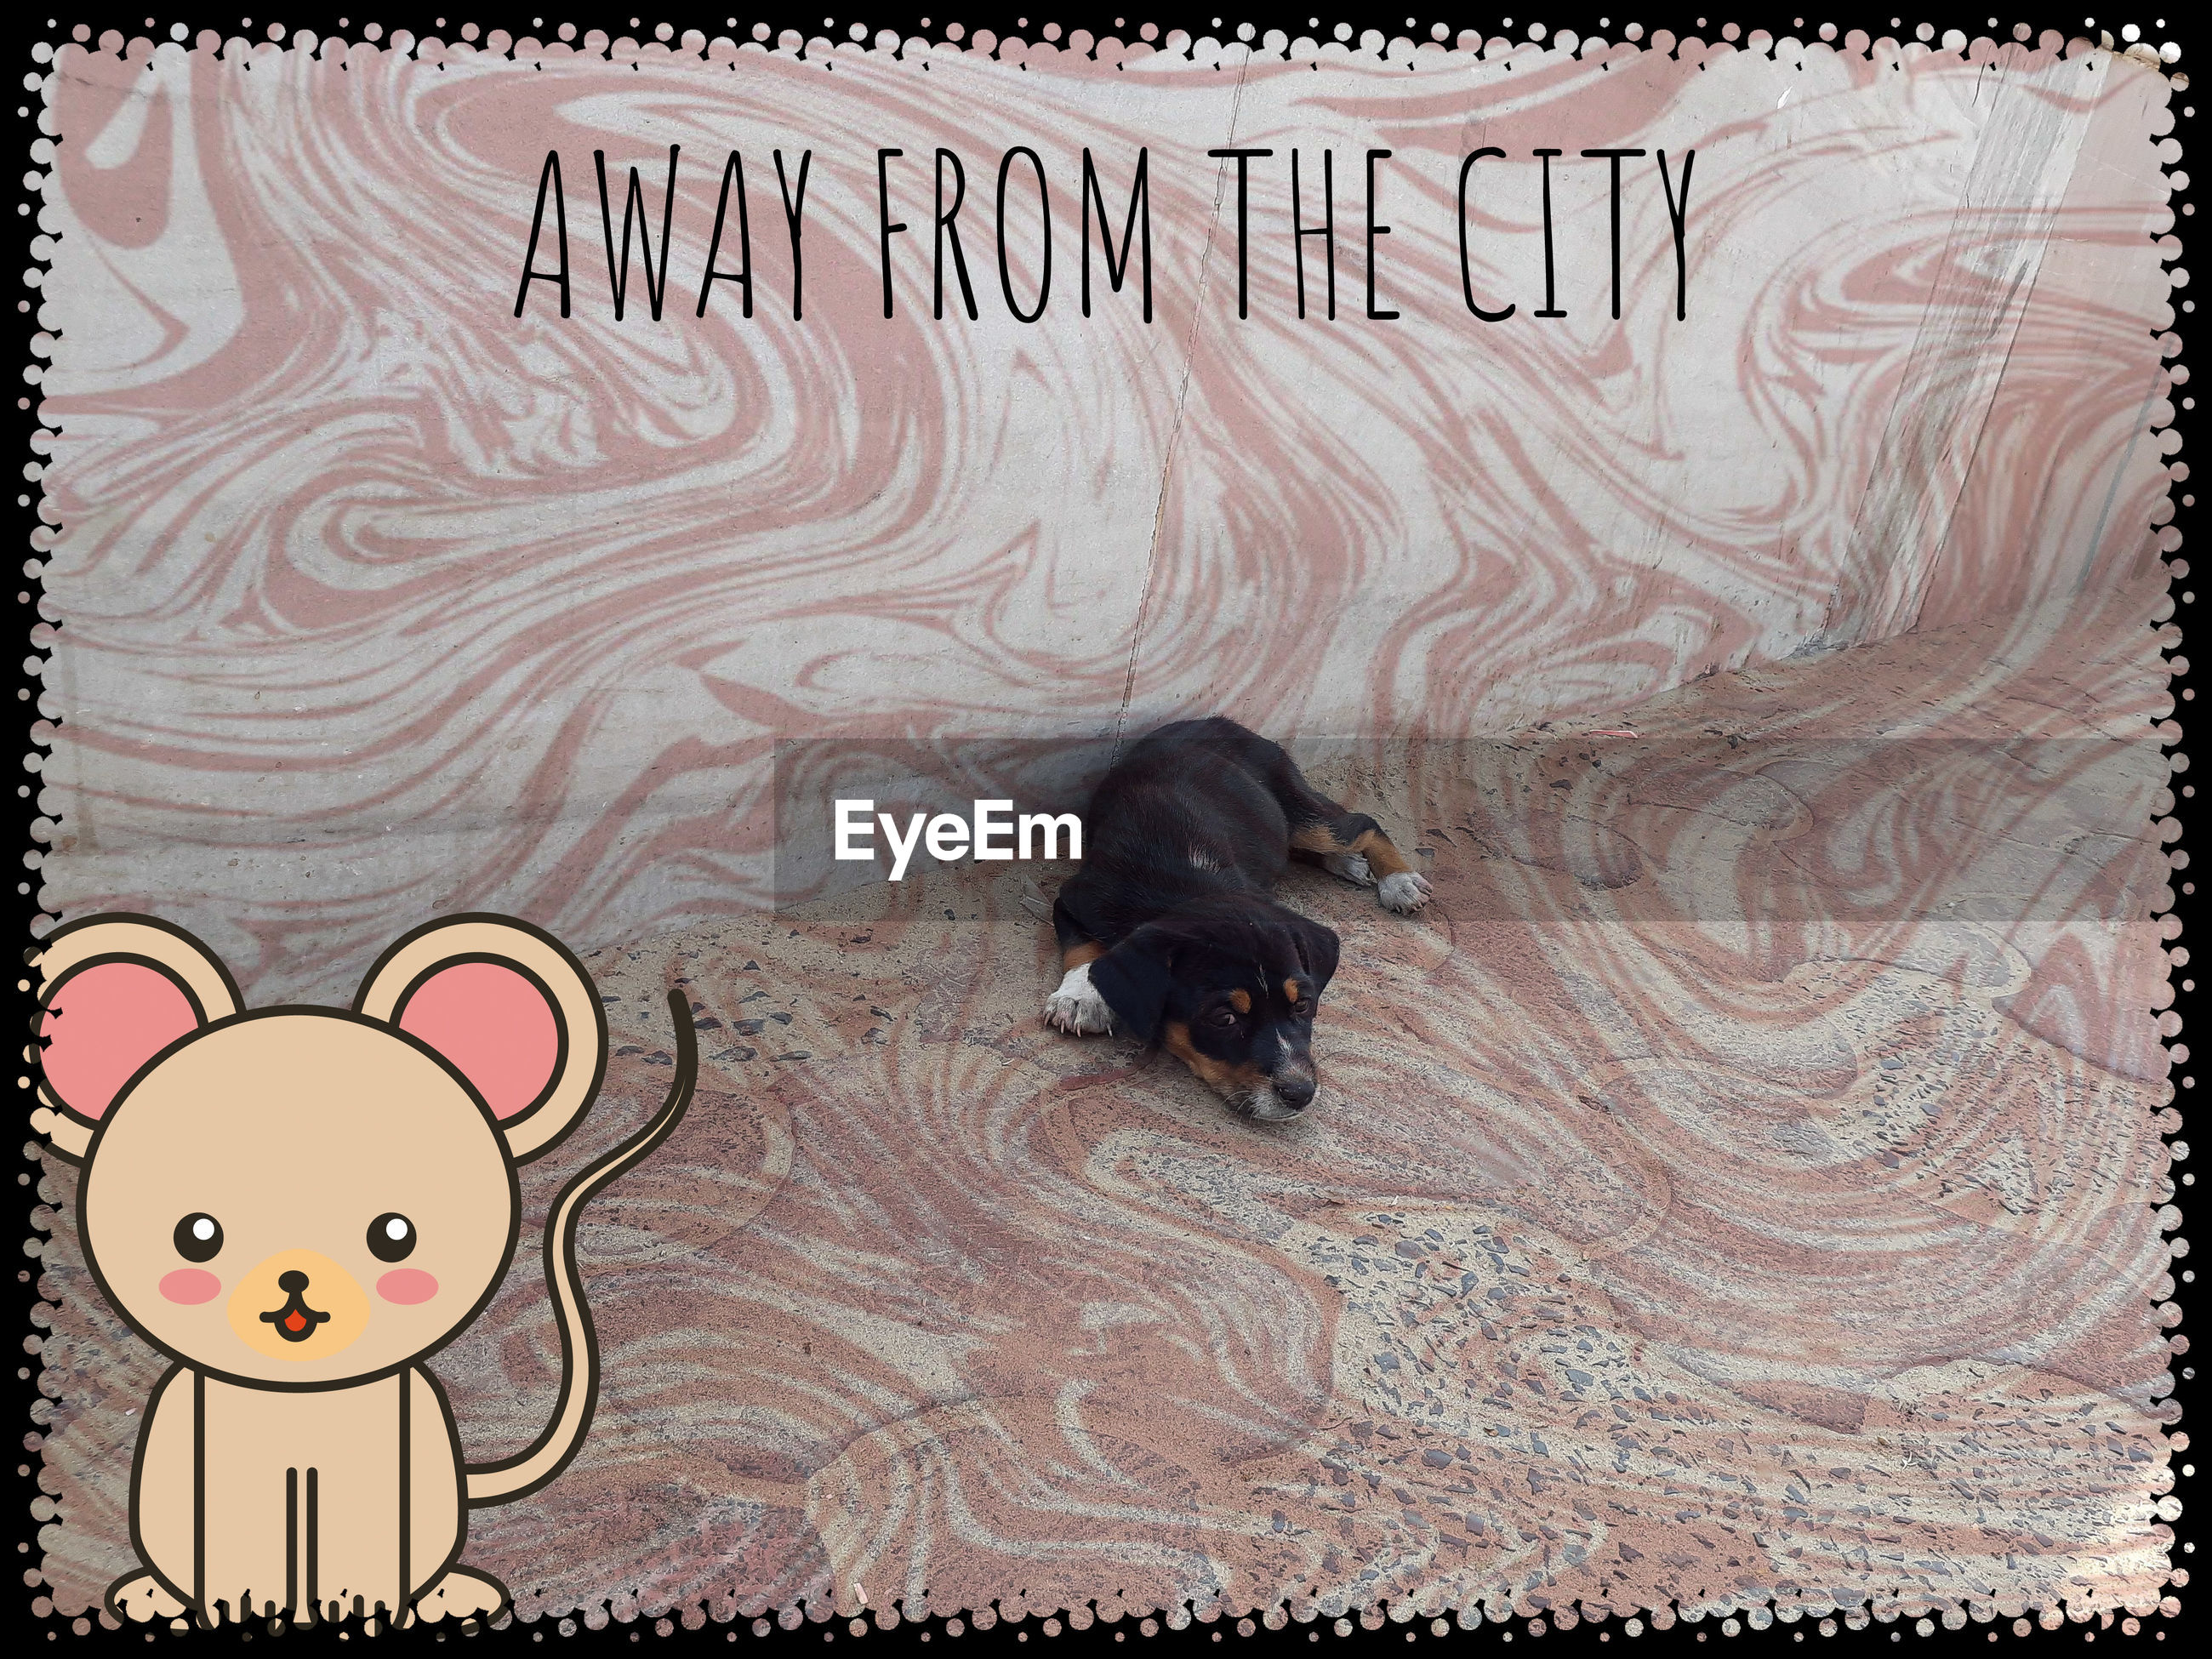 HIGH ANGLE VIEW OF A DOG IN THE TEXT